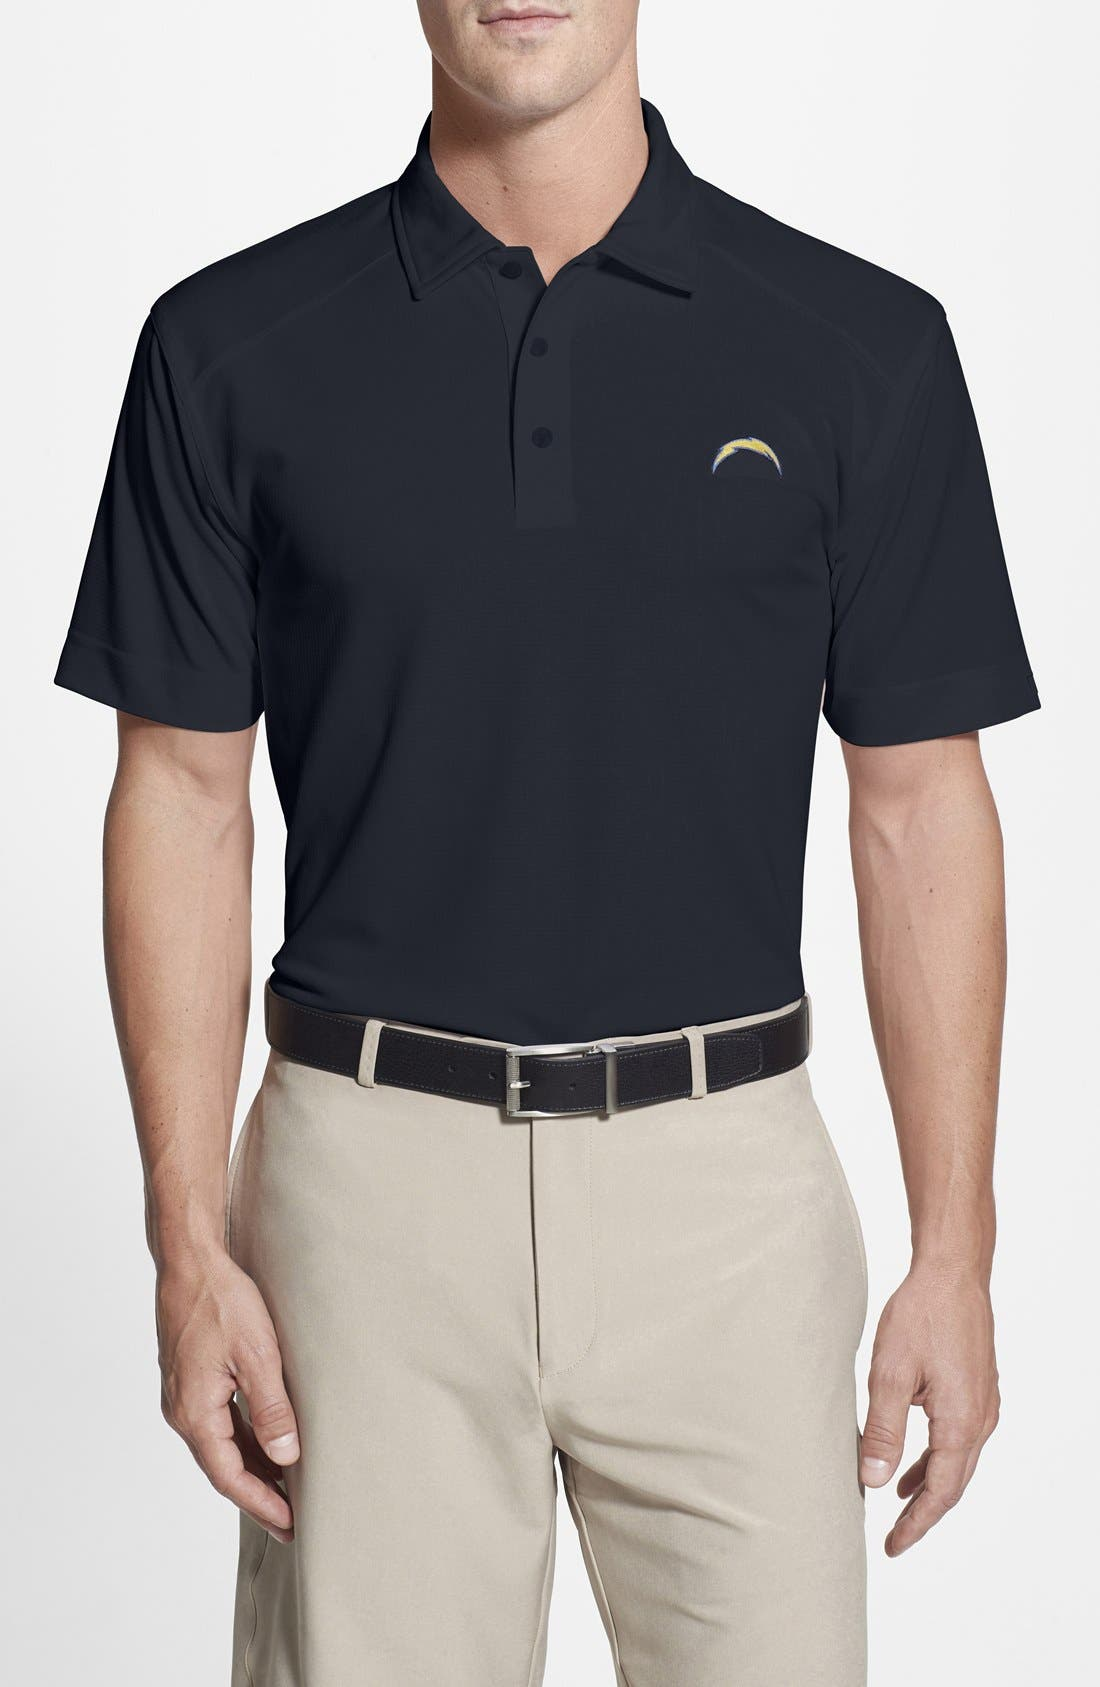 San Diego Chargers - Genre DryTec Moisture Wicking Polo,                         Main,                         color, Navy Blue